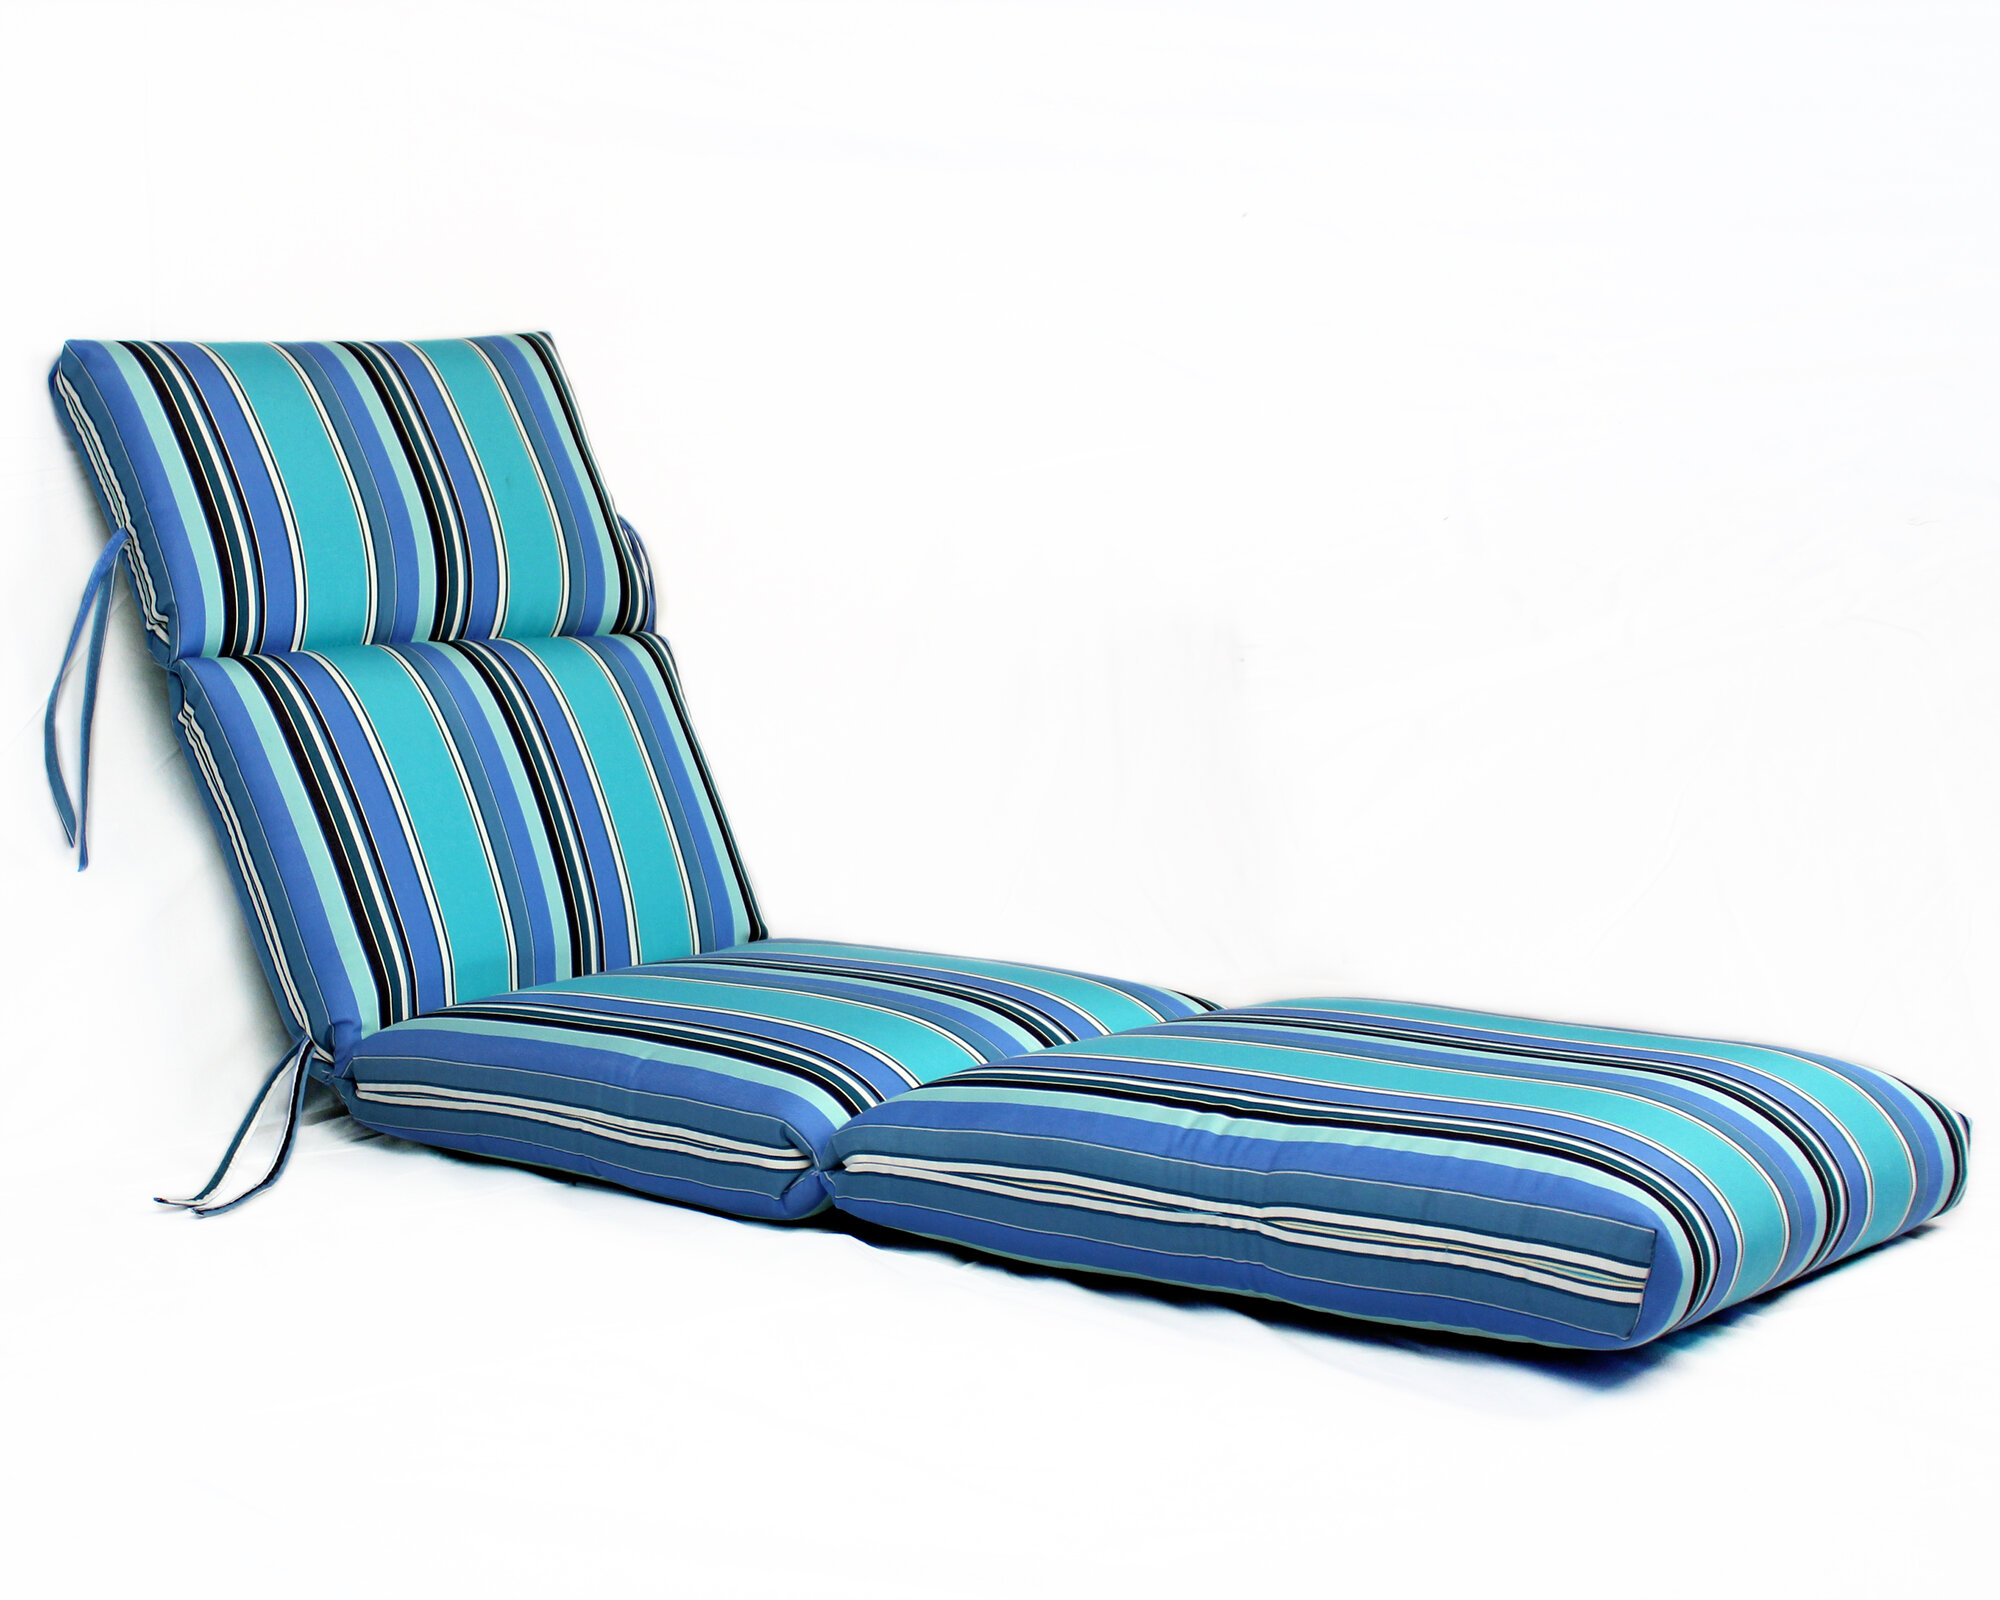 Comfort clas outdoor sunbrella chaise lounge cushion ebay for Chaise longue cushion